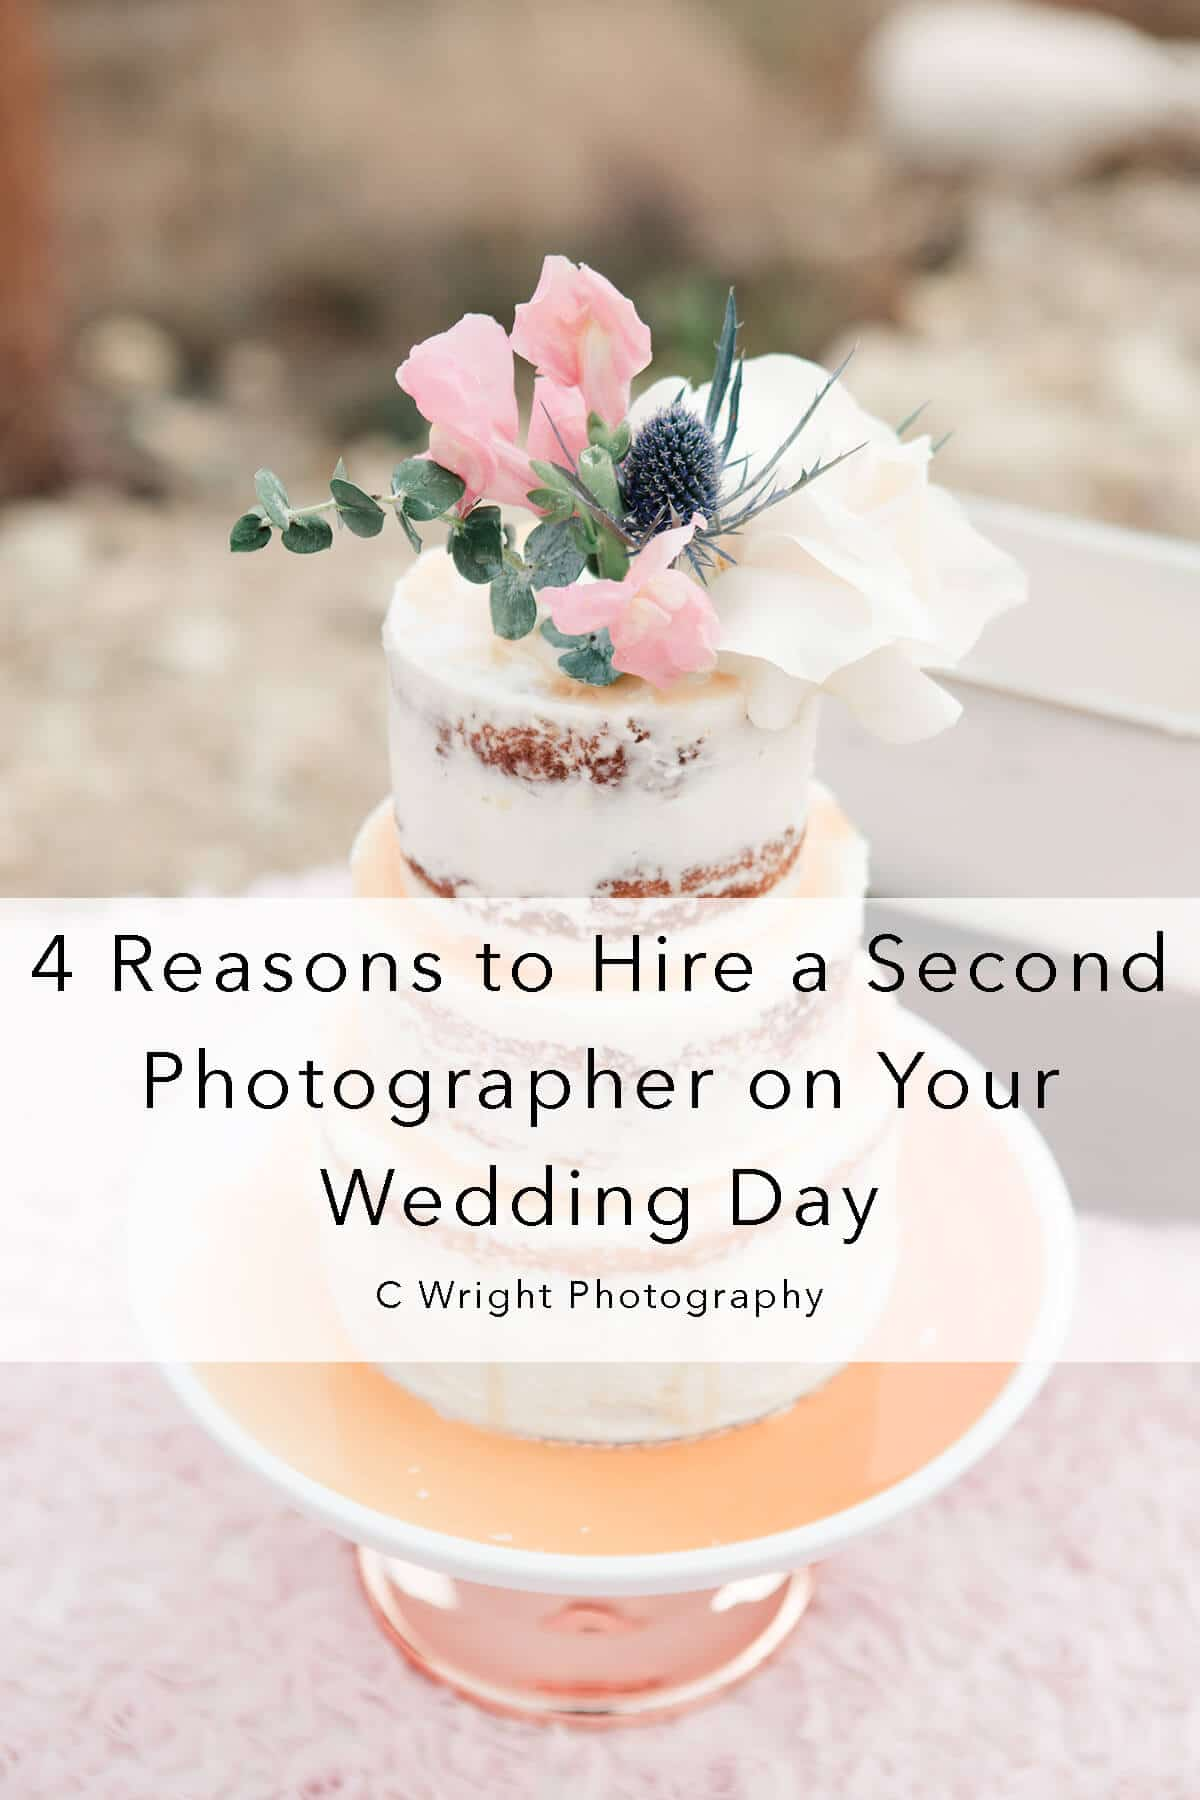 4 reasons to hire a second photographer on your wedding day